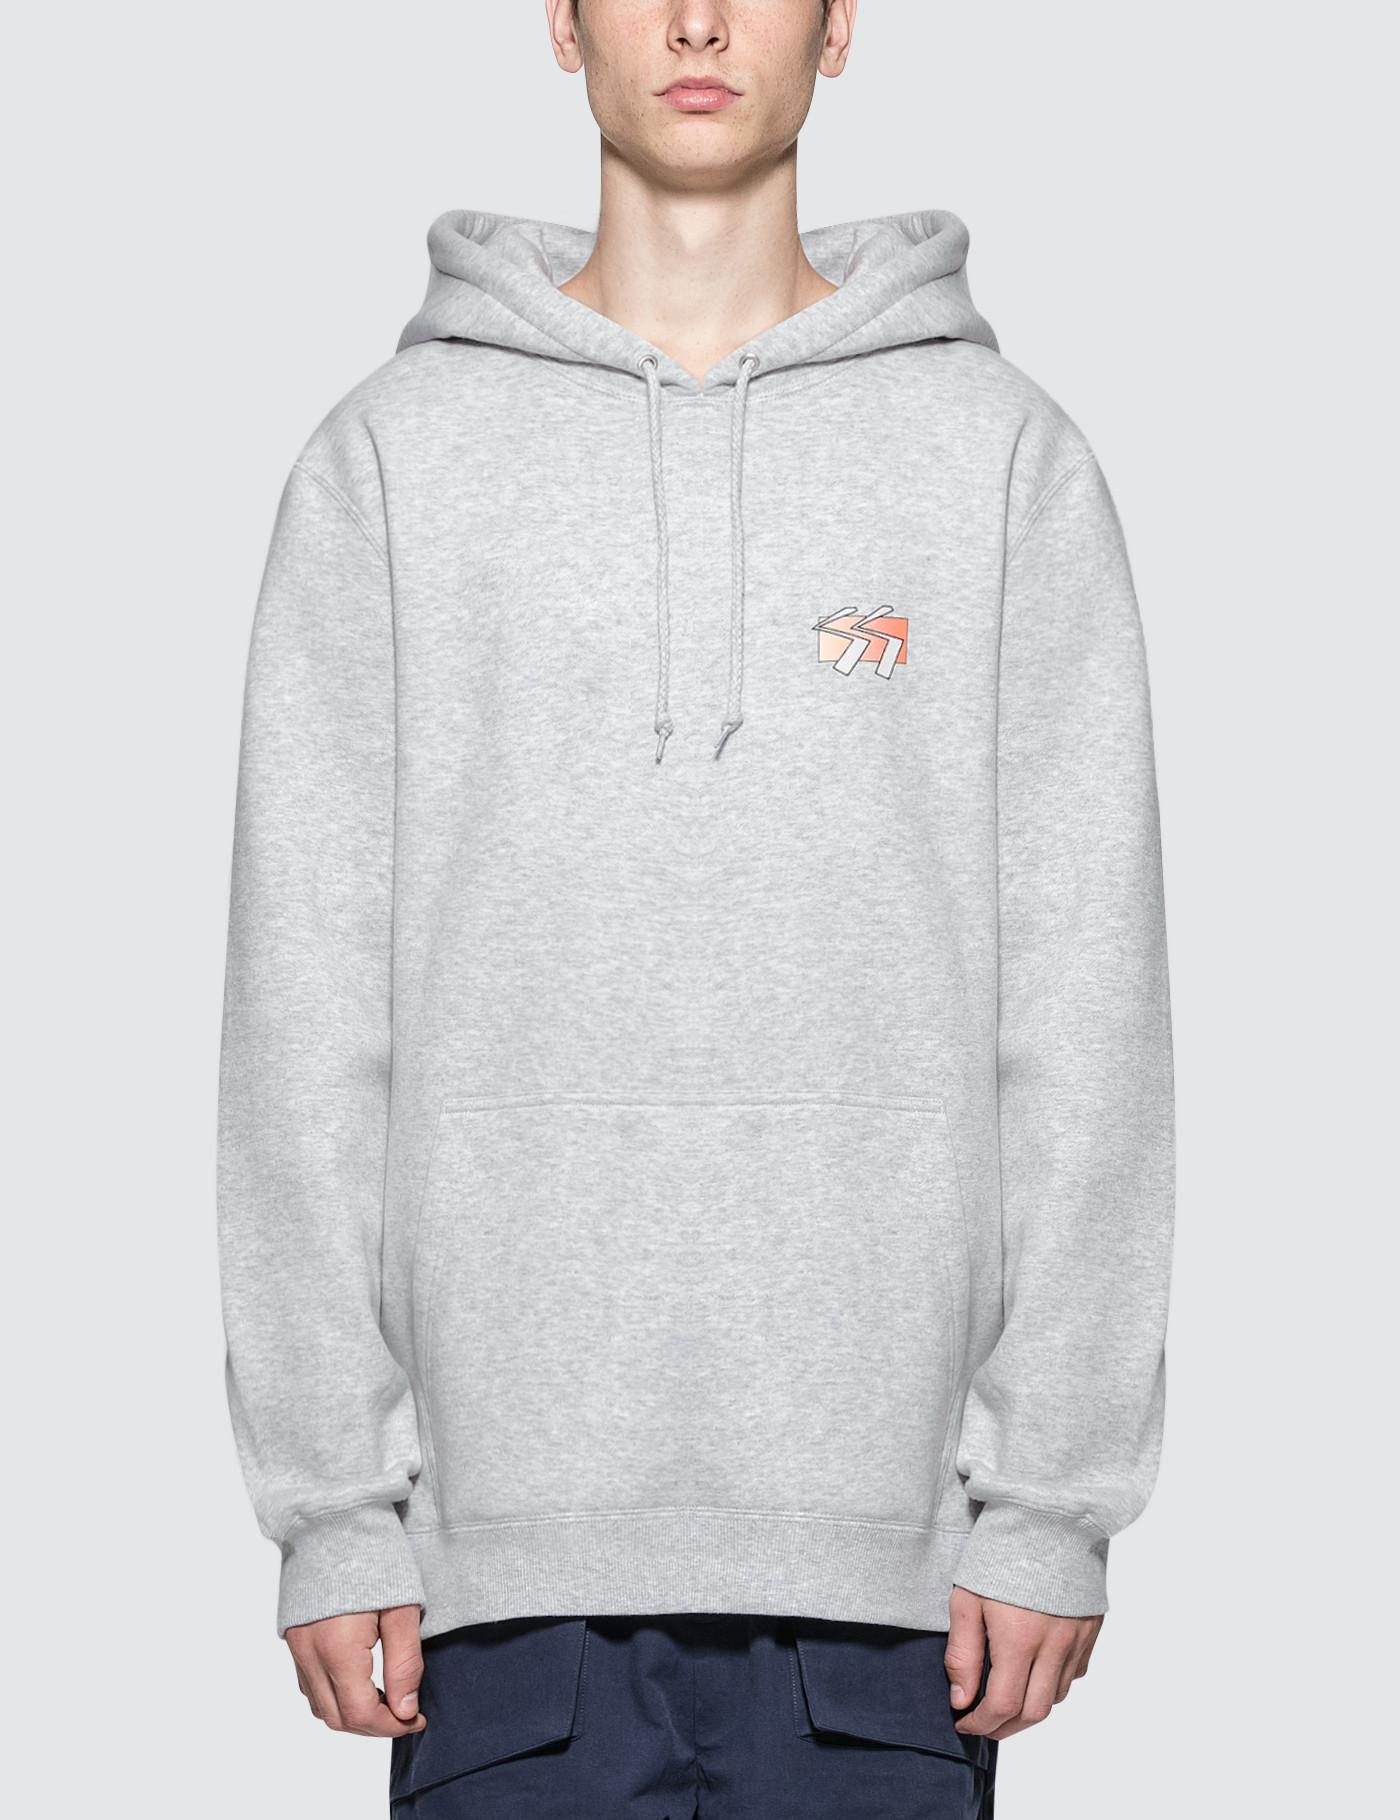 0a9a38d019 Stussy Gray Ss Cube Hoodie for men